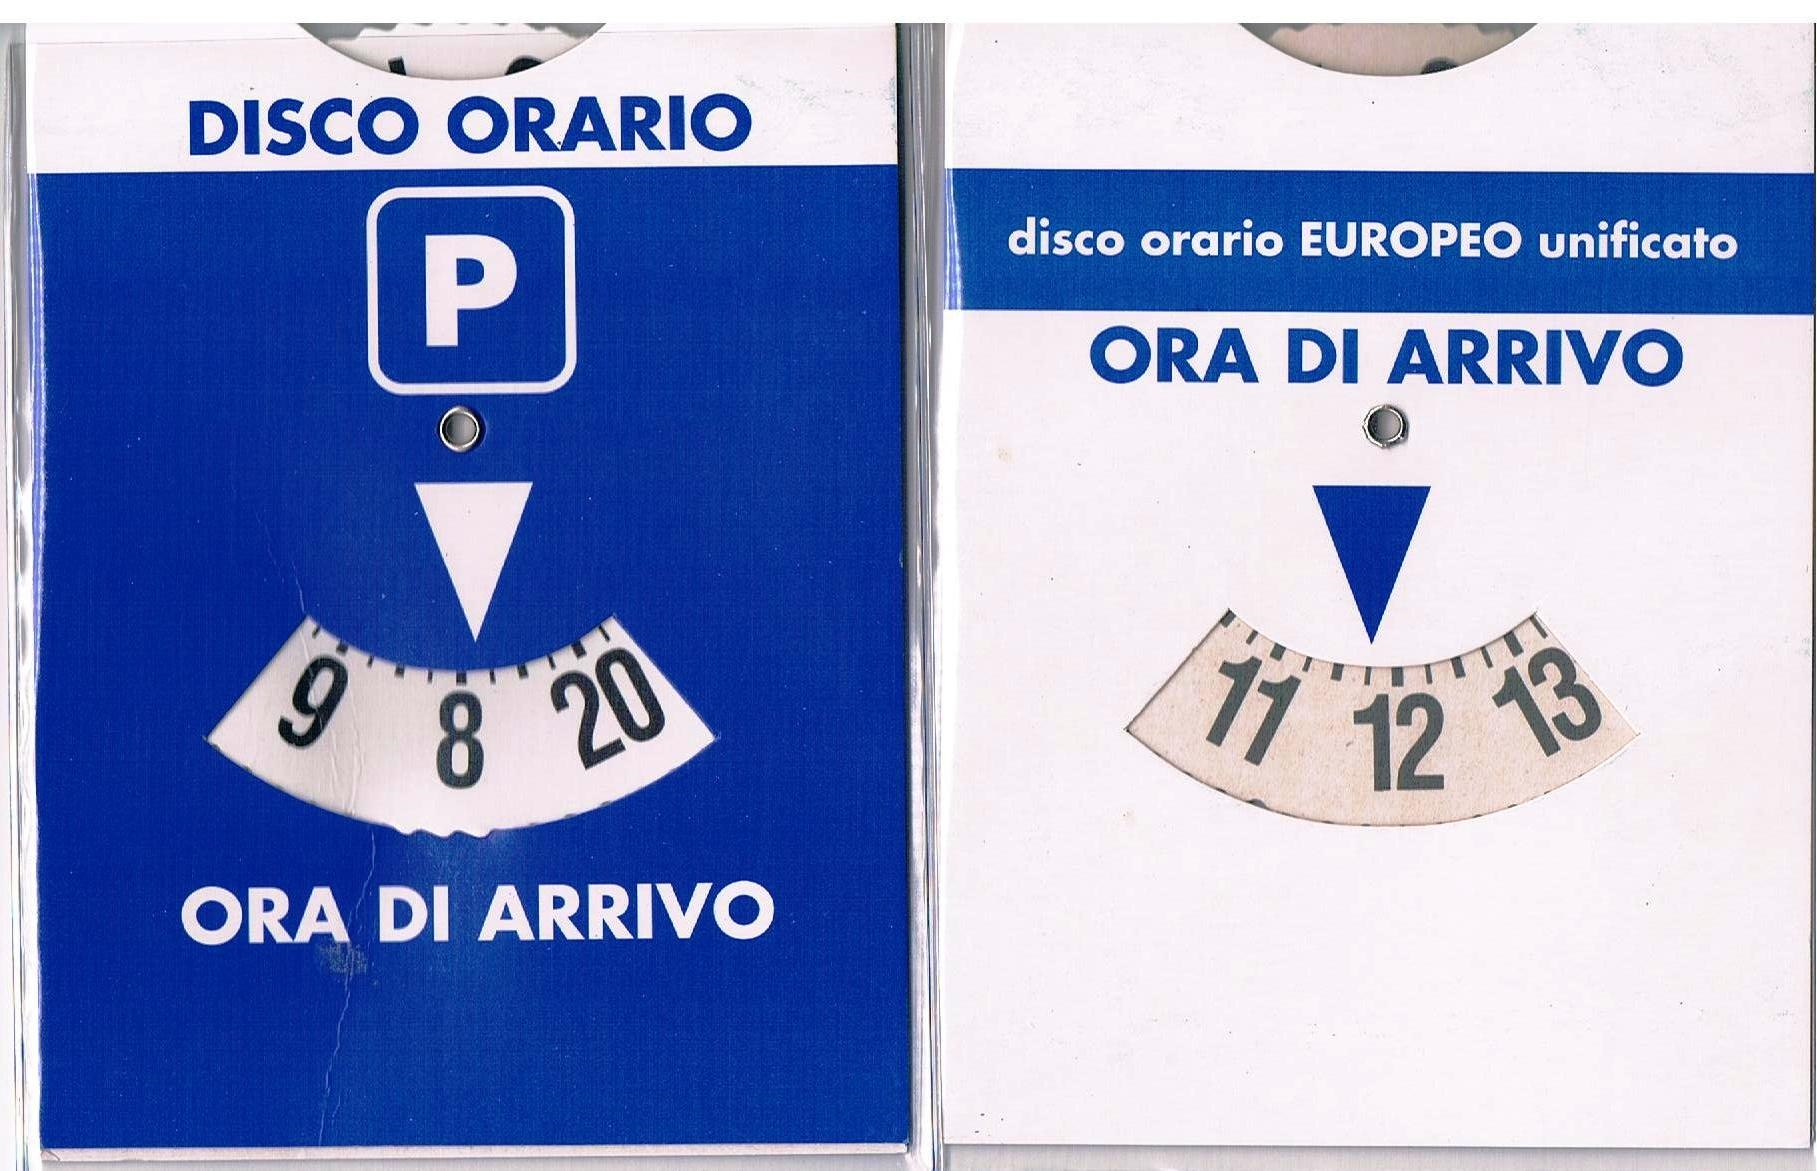 Top DISCO ORARIO EUROPEO 26414205 - NEGOZIO E ACCESSORI - Stil Carta  CB34